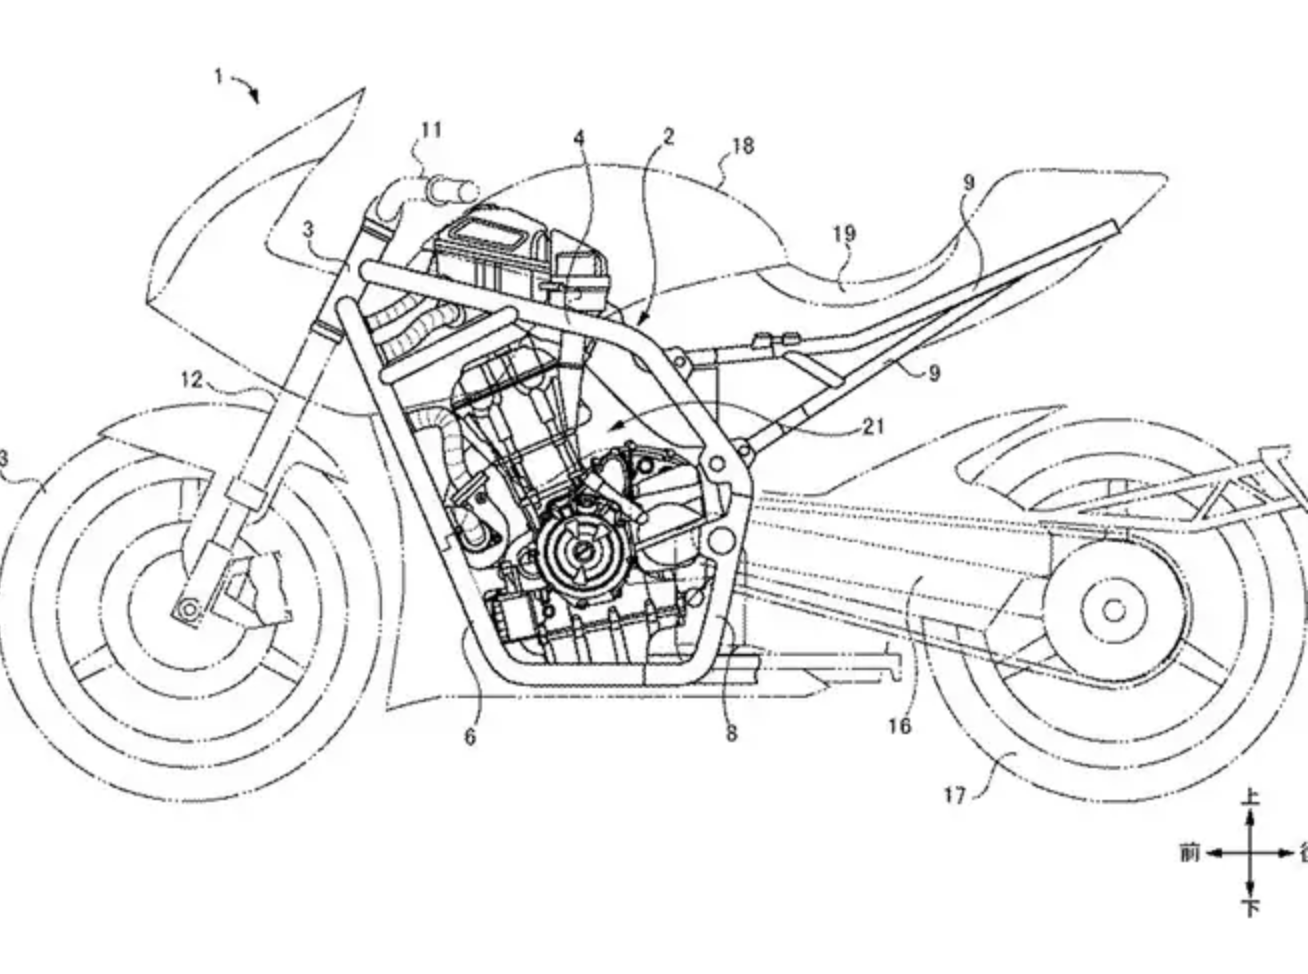 Suzuki twin-turbo motorcycle patent